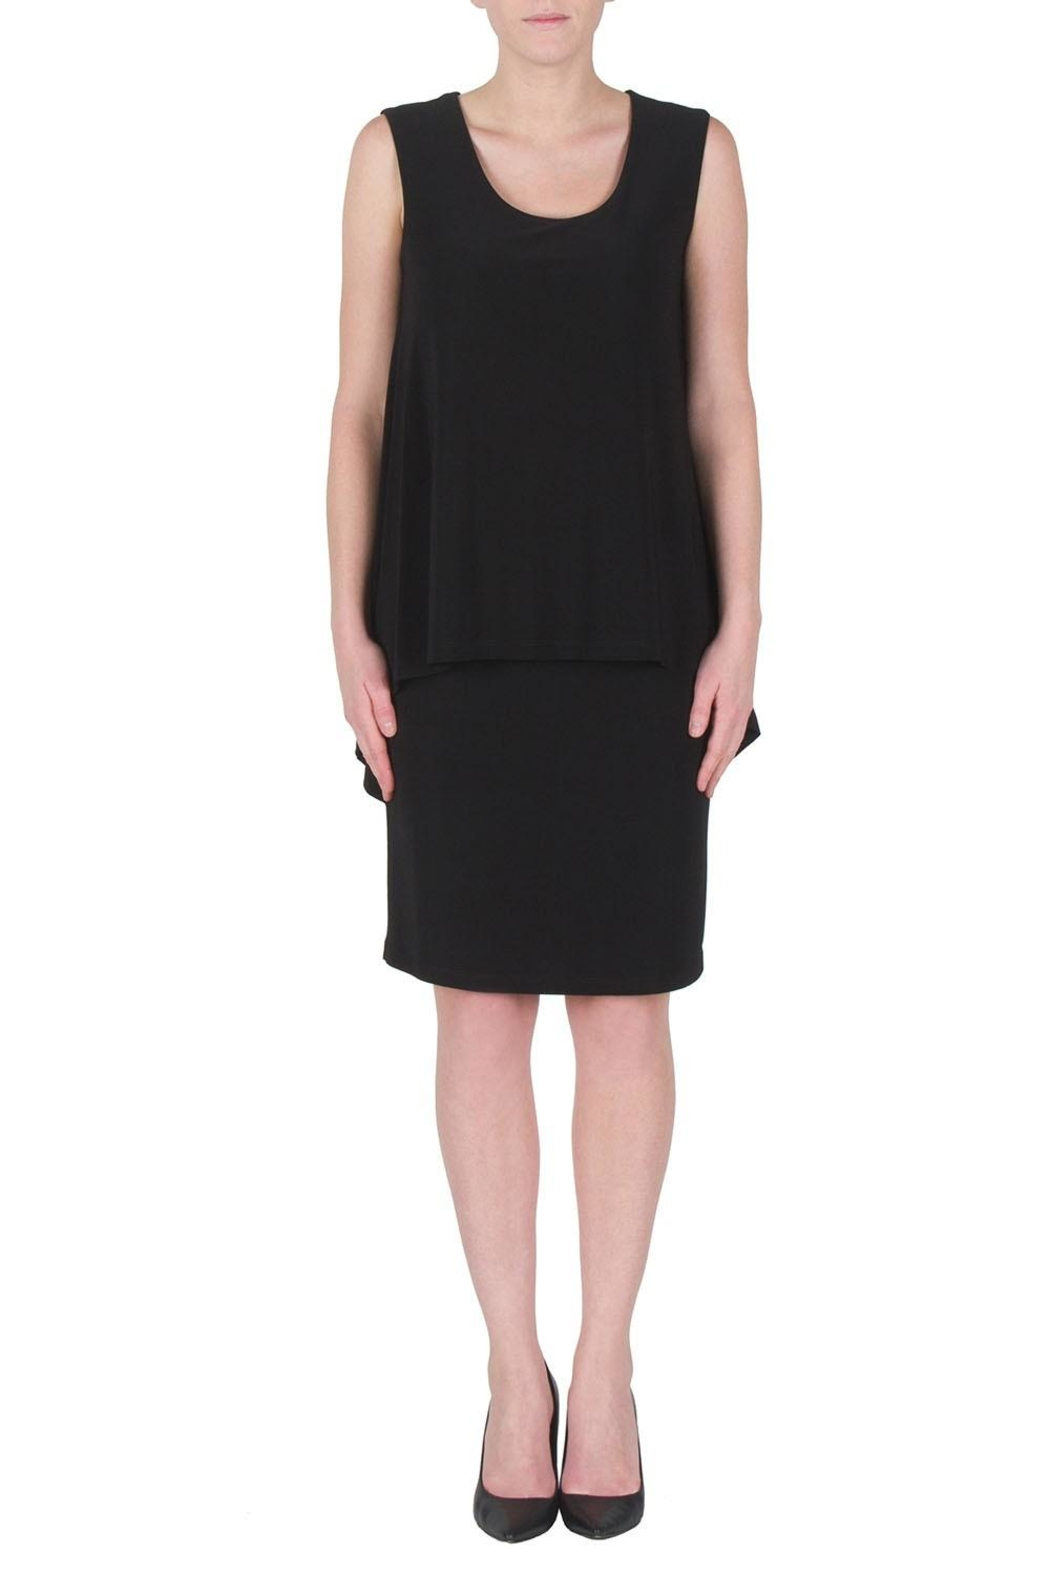 Joseph Ribkoff Draped Cocktail Dress - Main Image